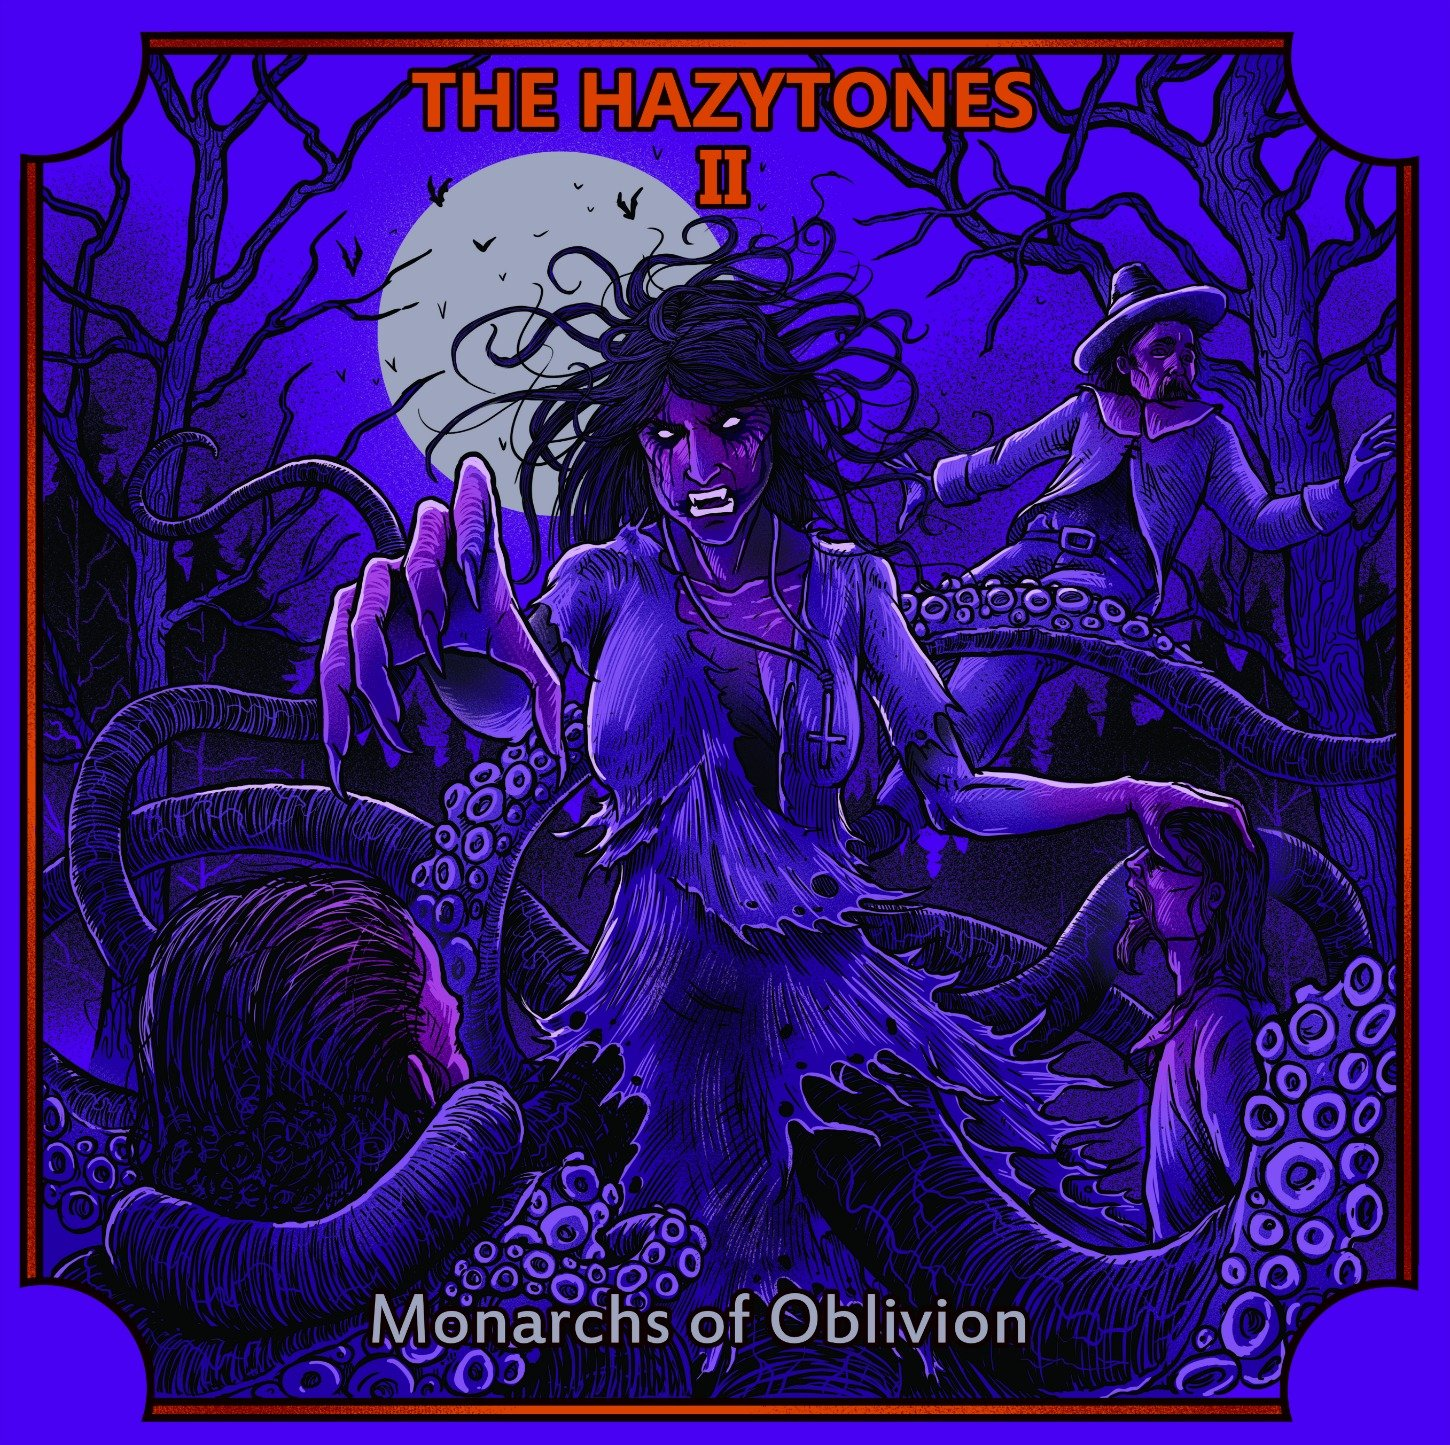 The Hazytones Monarchs of Oblivion premiere